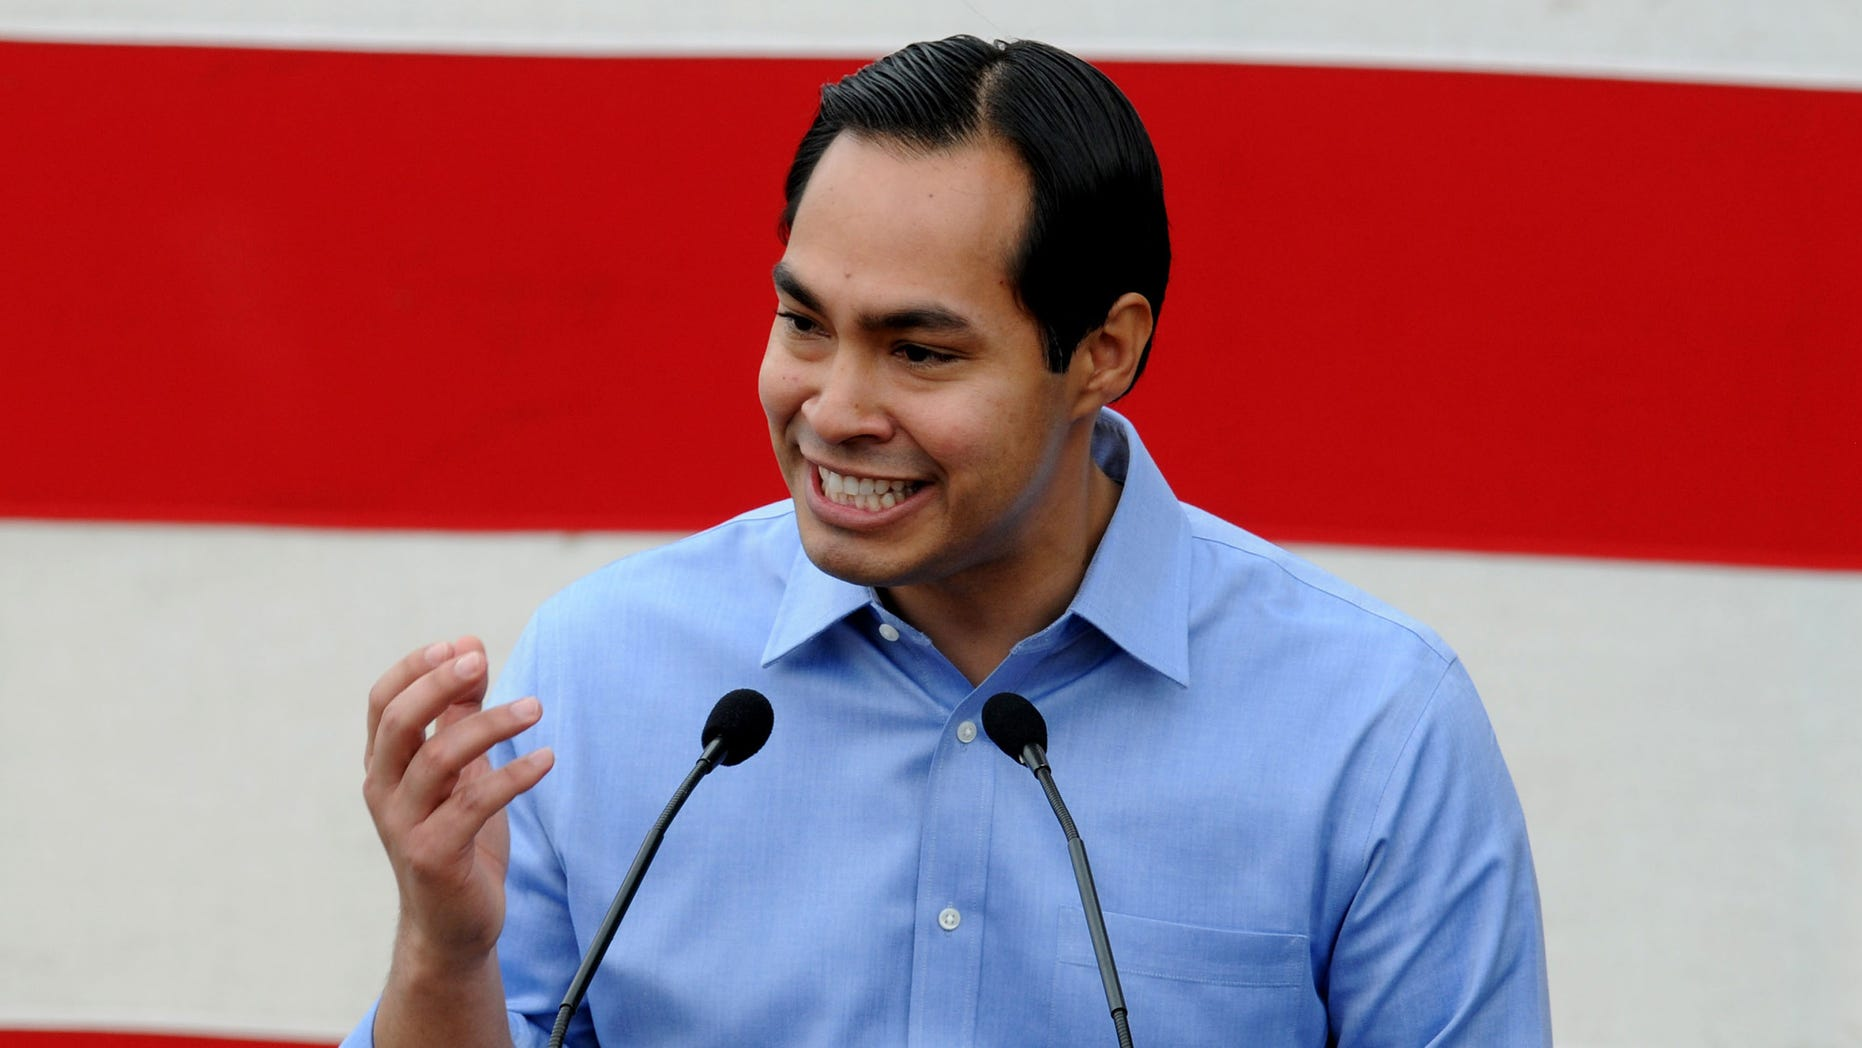 INDIANOLA, IOWA - SEPTEMBER 15: San Antonio Mayor Julian Castro speaks at the 36th Annual Harkin Steak Fry on September 15, 2013 in Indianola, Iowa. Sen. Harkin's Democratic fundraiser is one of the largest in Iowa each year. (Photo by Steve Pope/Getty Images)